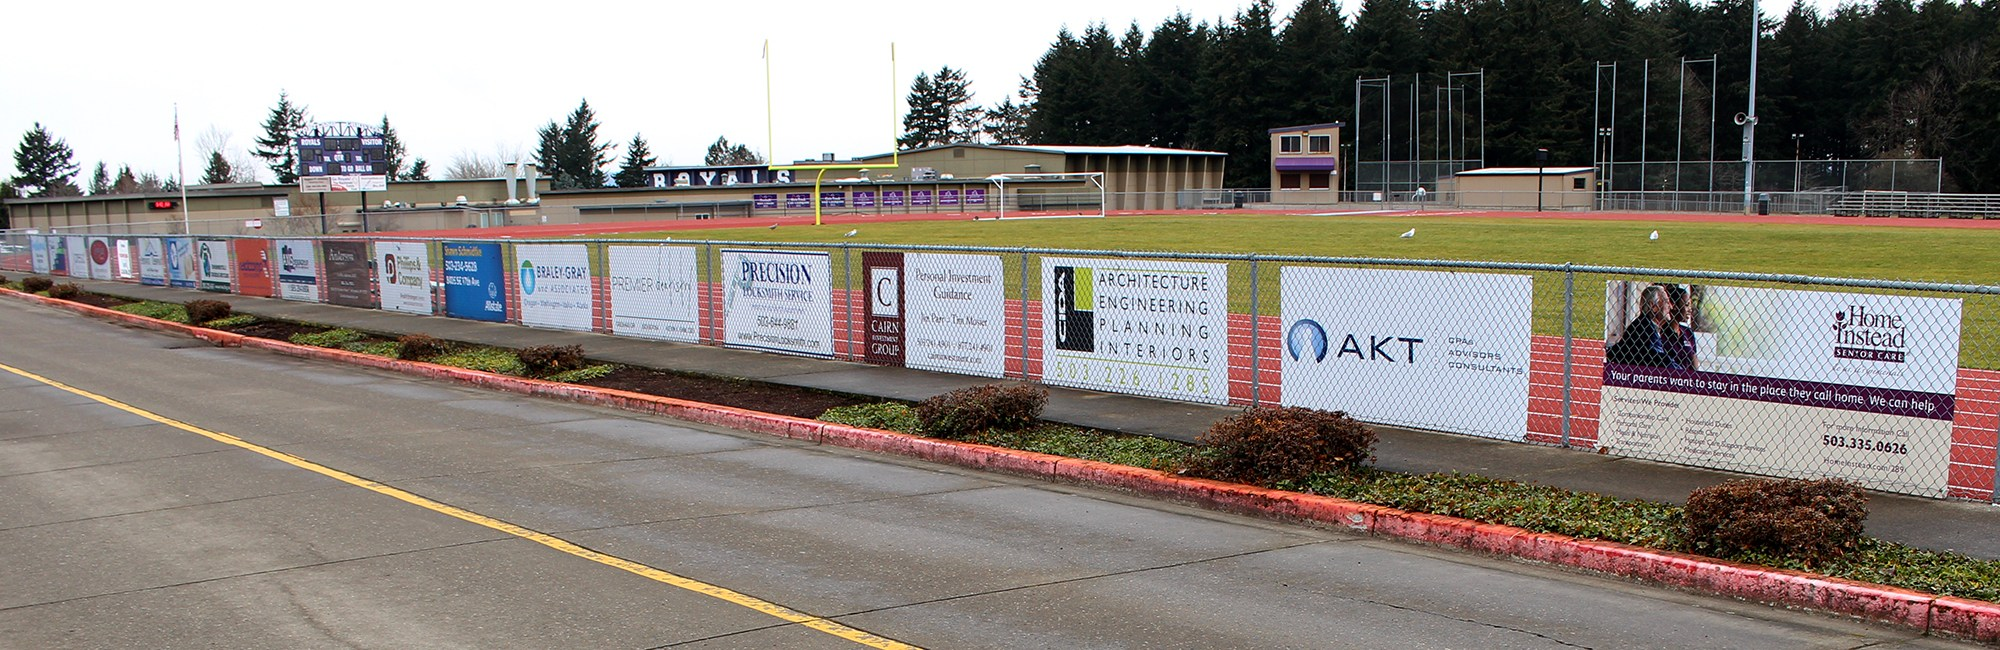 Business Sponsor logos on the track & field fencing